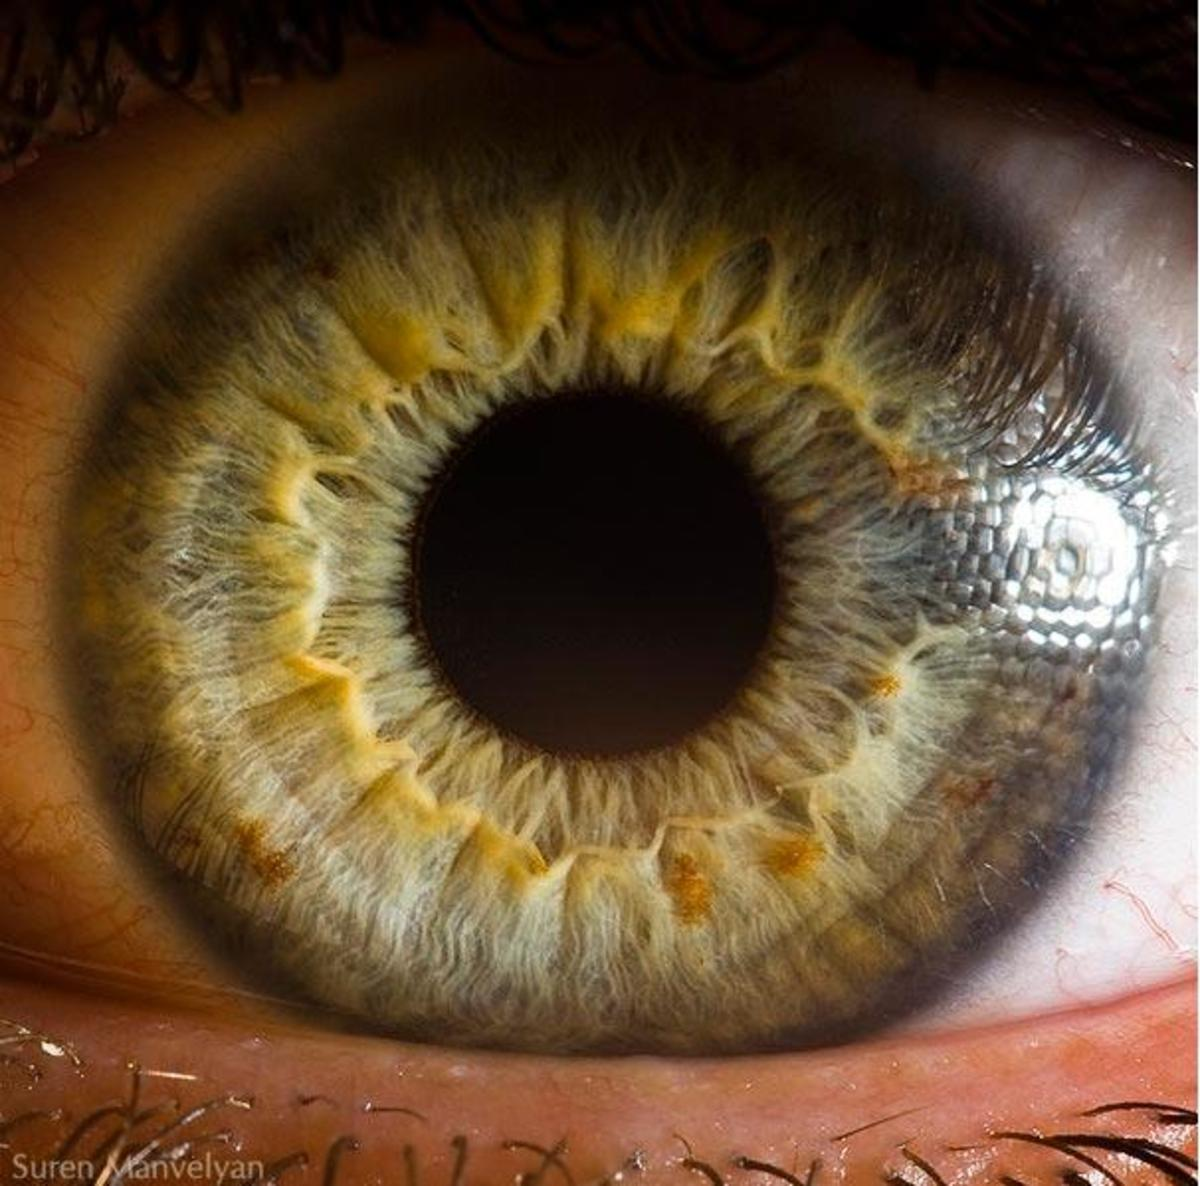 laser-eye-surgery-in-pakistan-locations-prices-special-offers